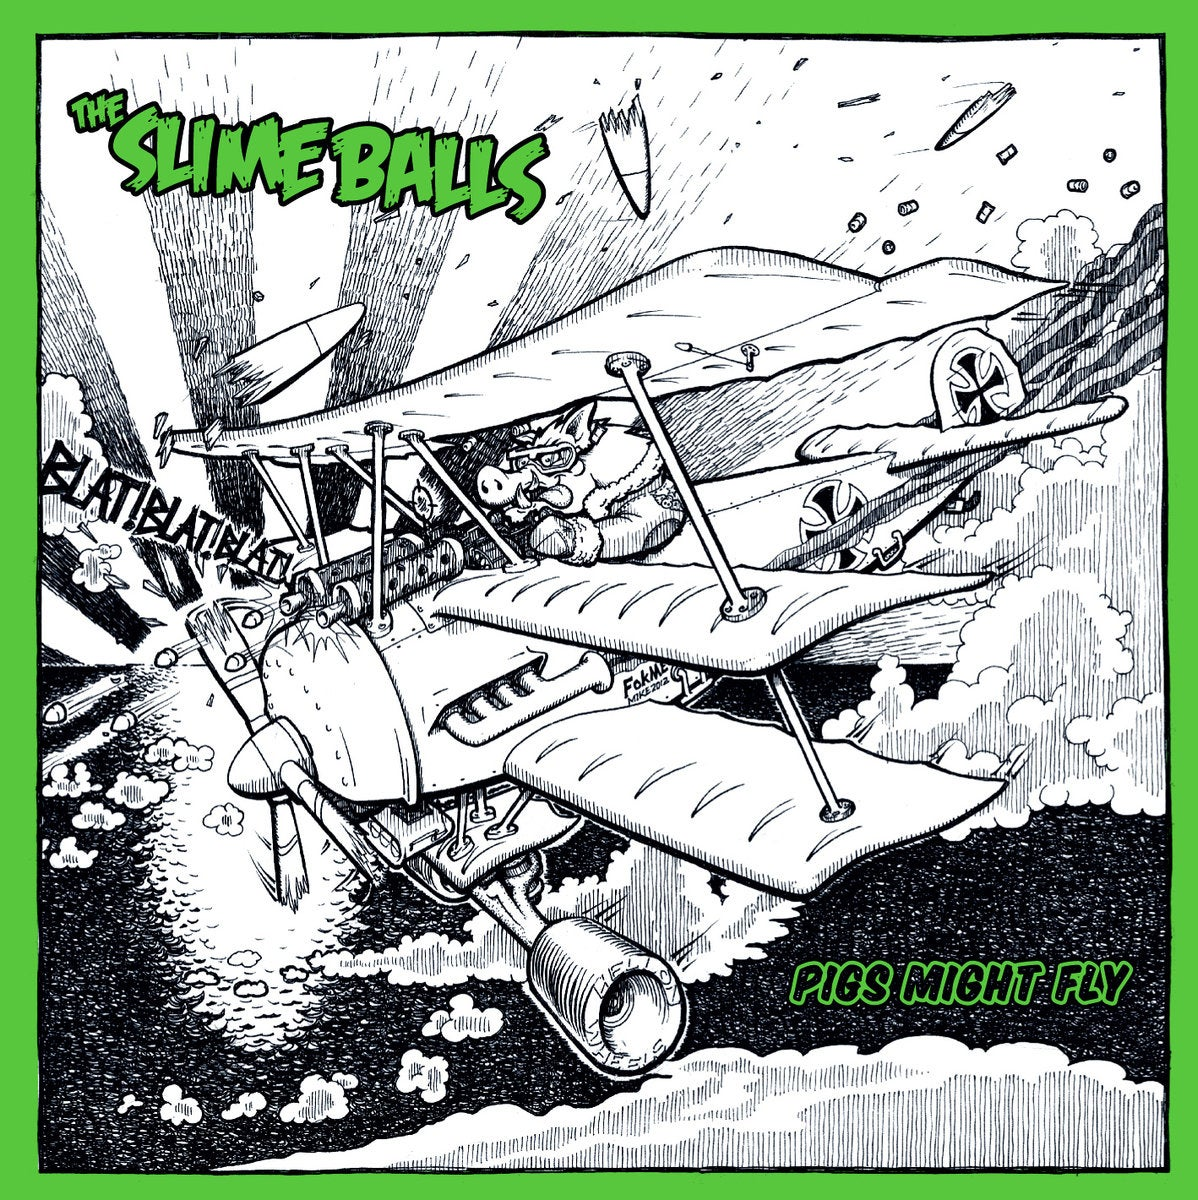 Image of The SlimeBalls - Pigs Might Fly